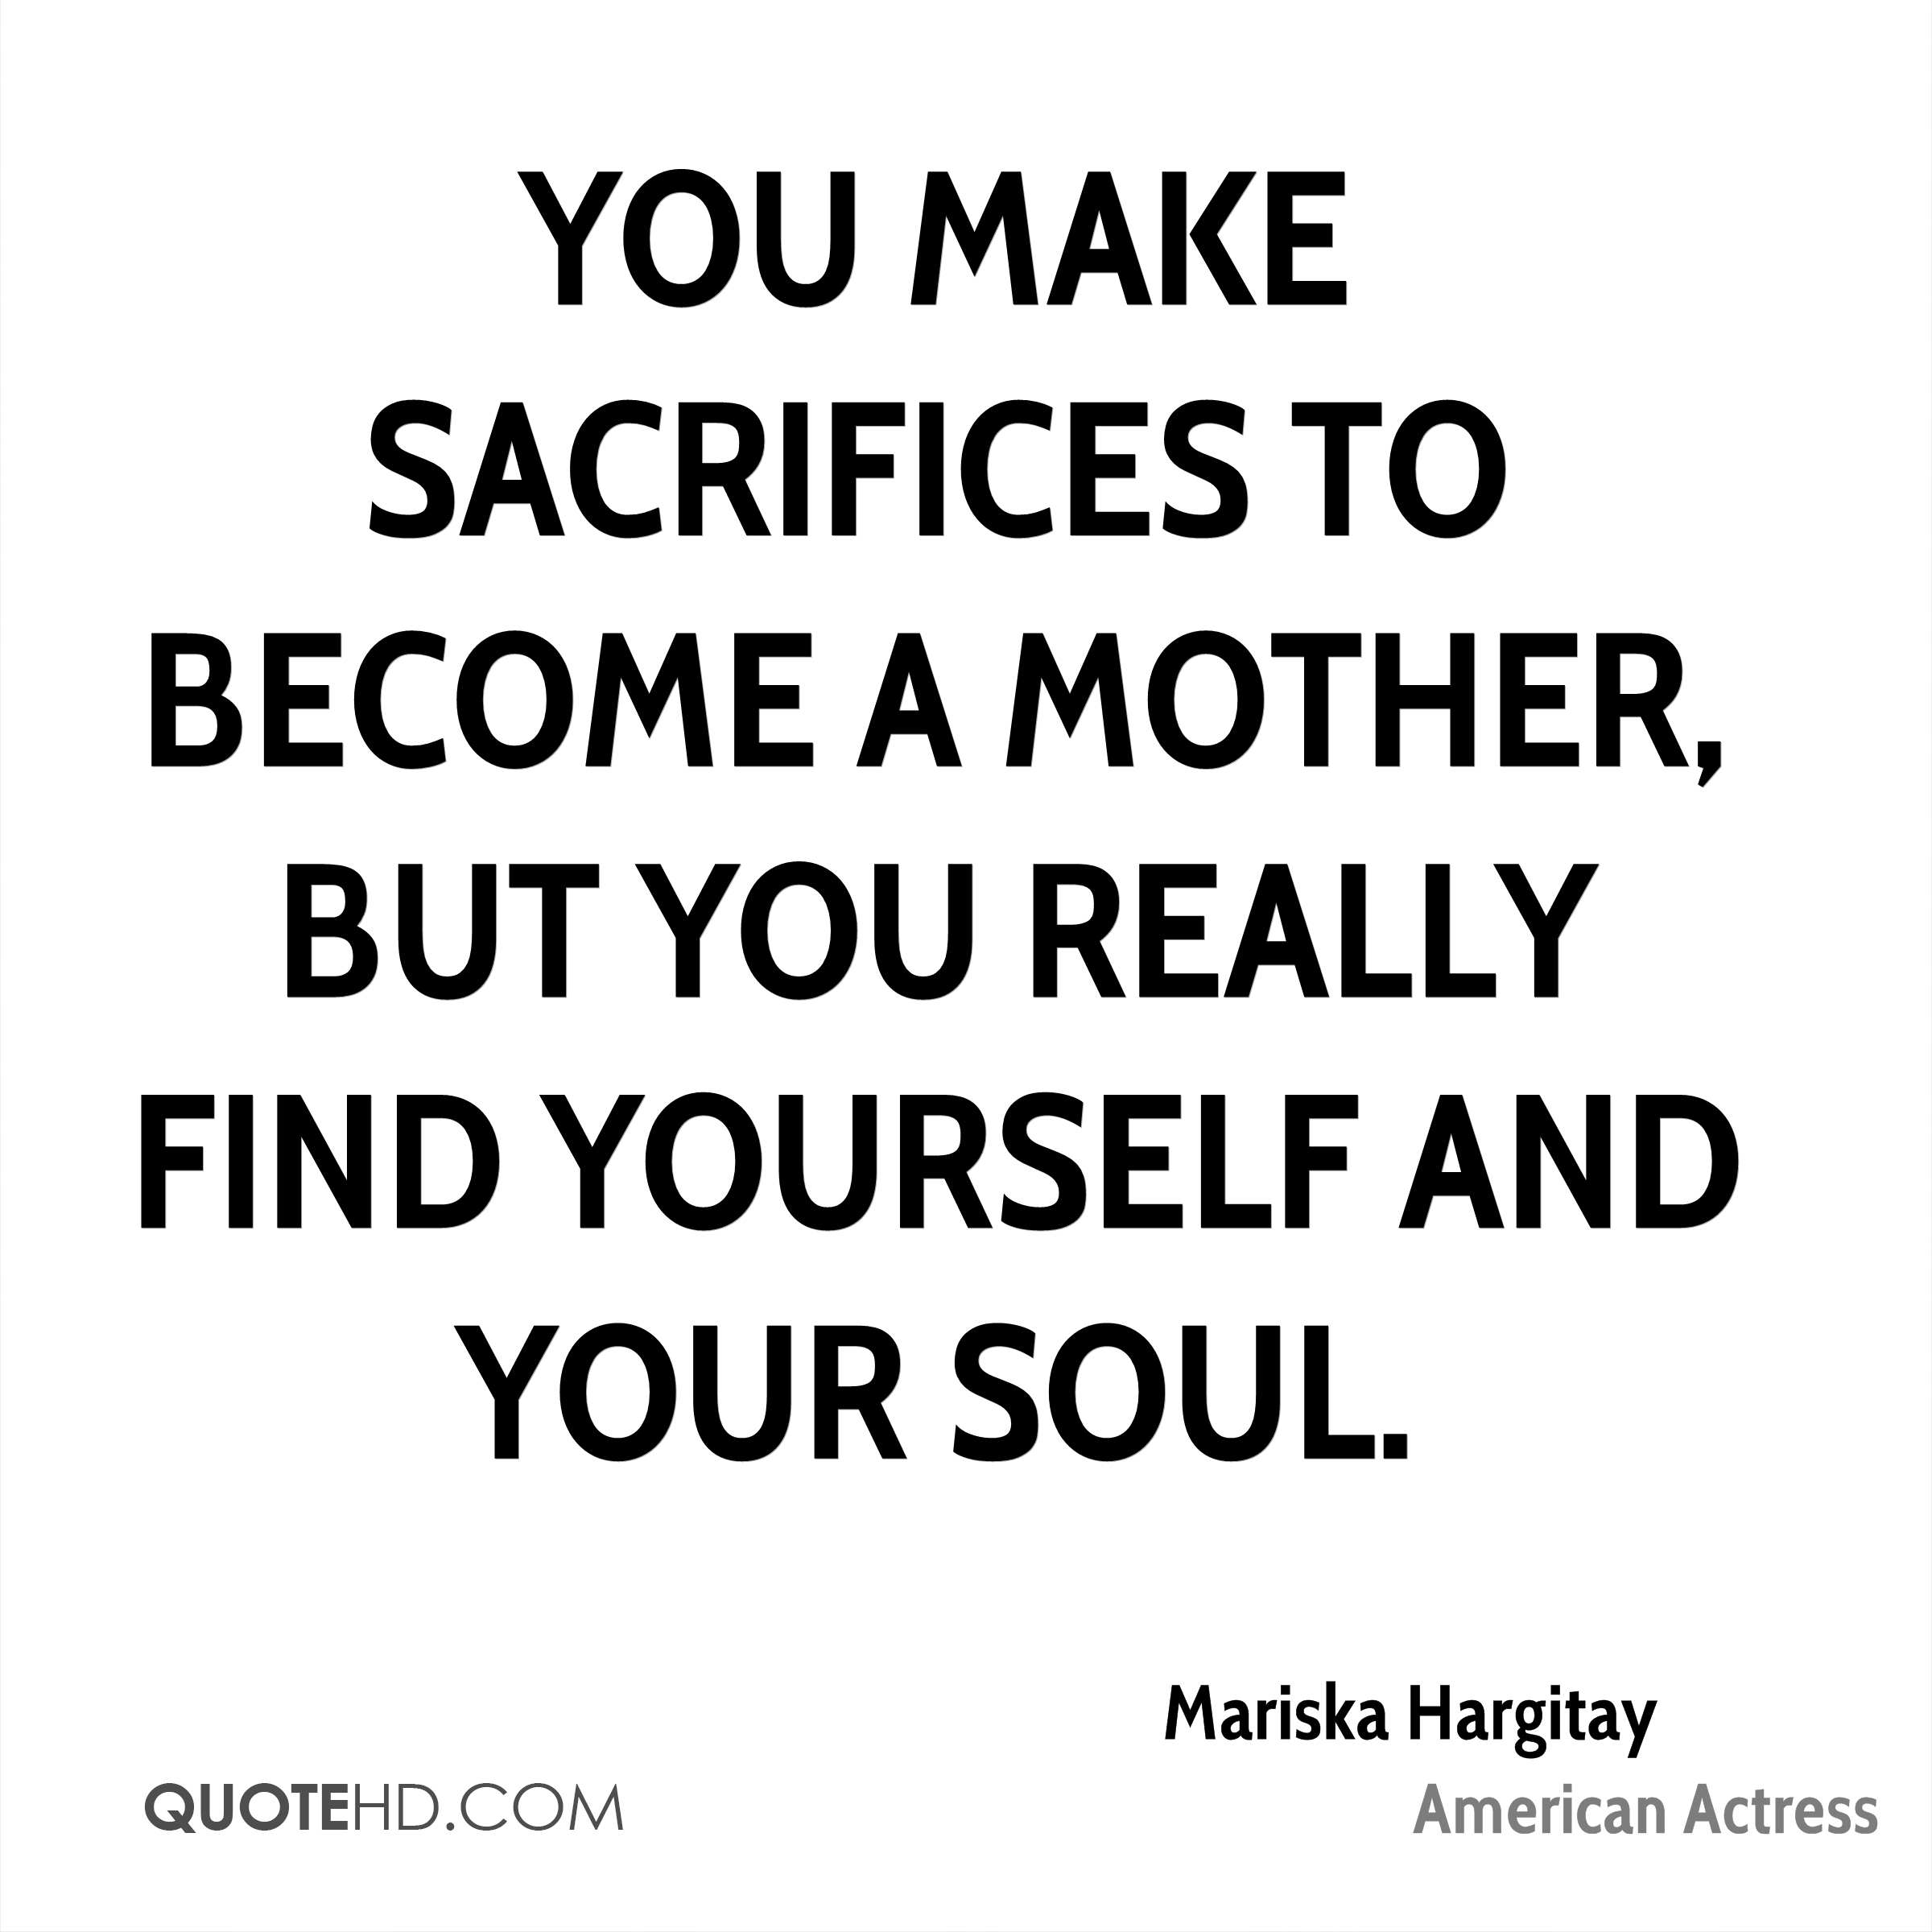 You Make Sacrifices To Become A Mother But Really Find Yourself And Your Soul